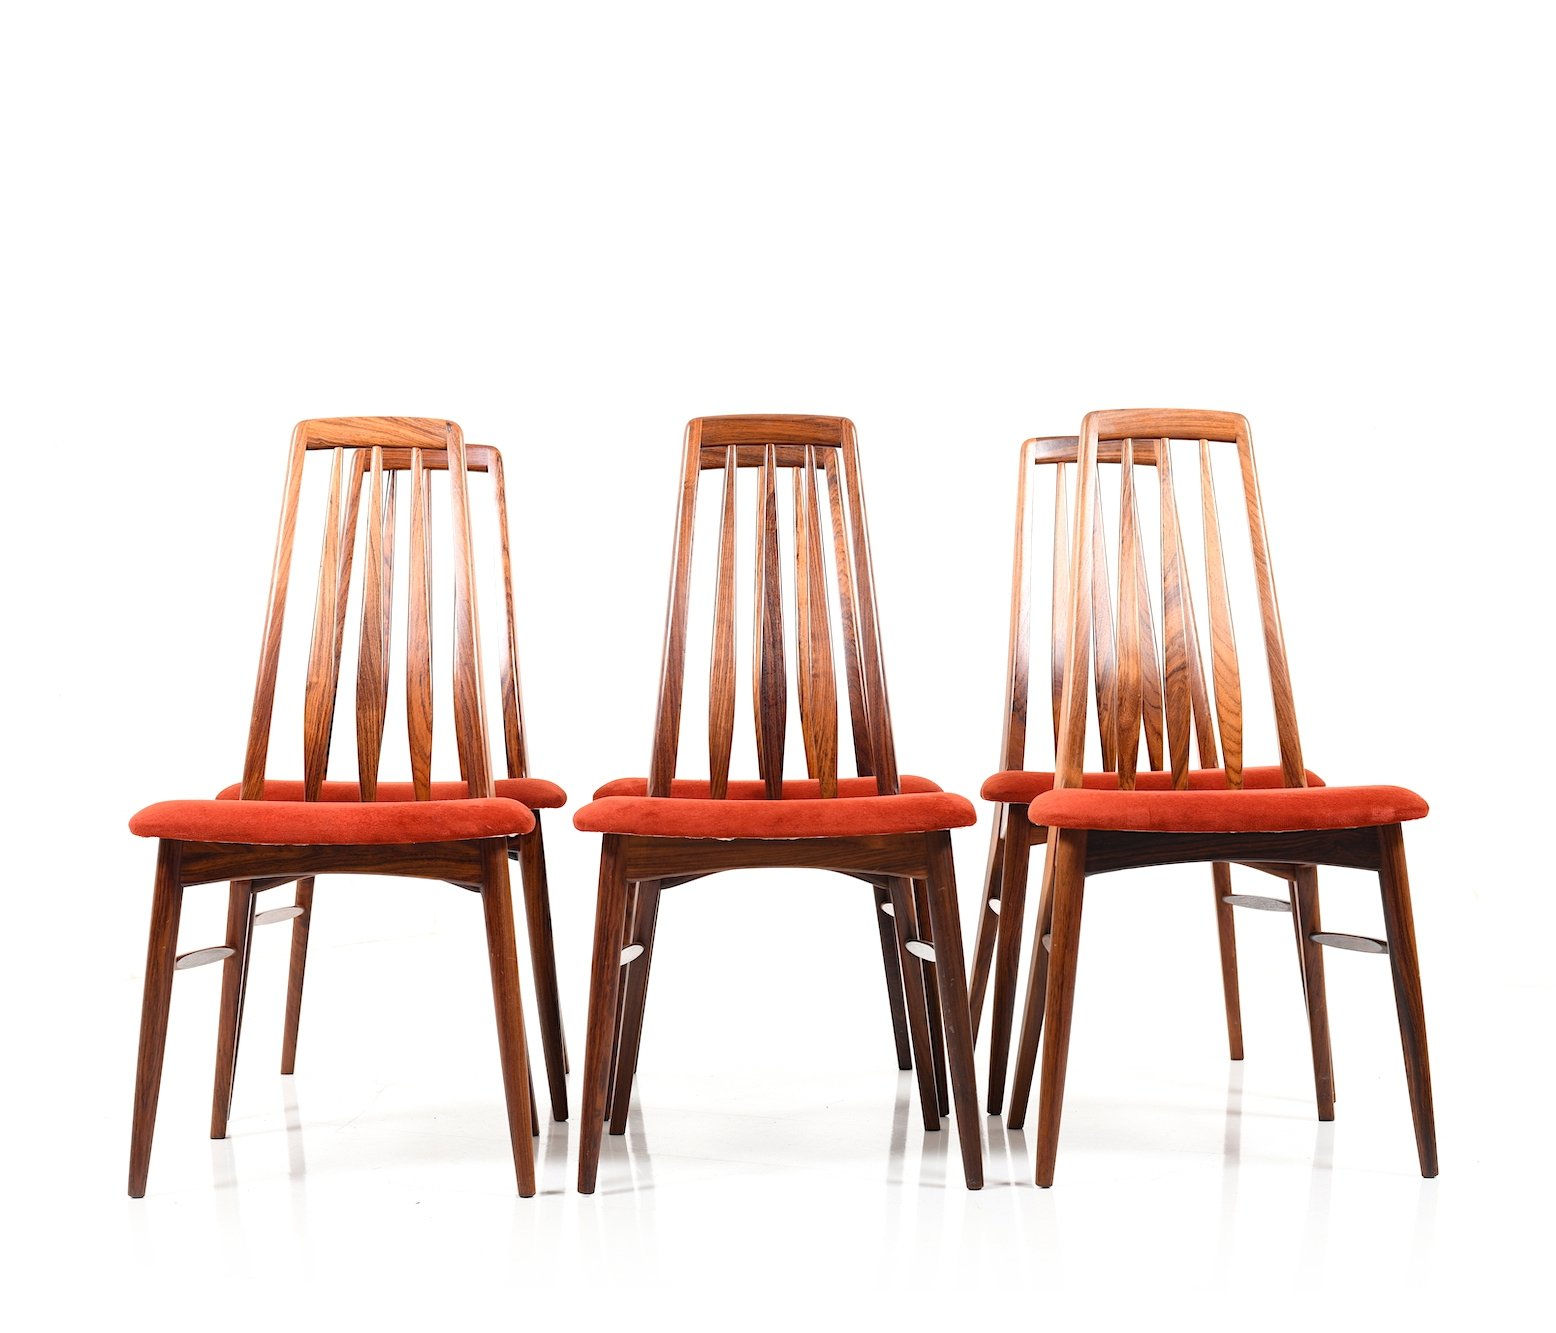 Groovy Set Of Six Rosewood Eva Dining Chairs By Niels Koefoed Creativecarmelina Interior Chair Design Creativecarmelinacom